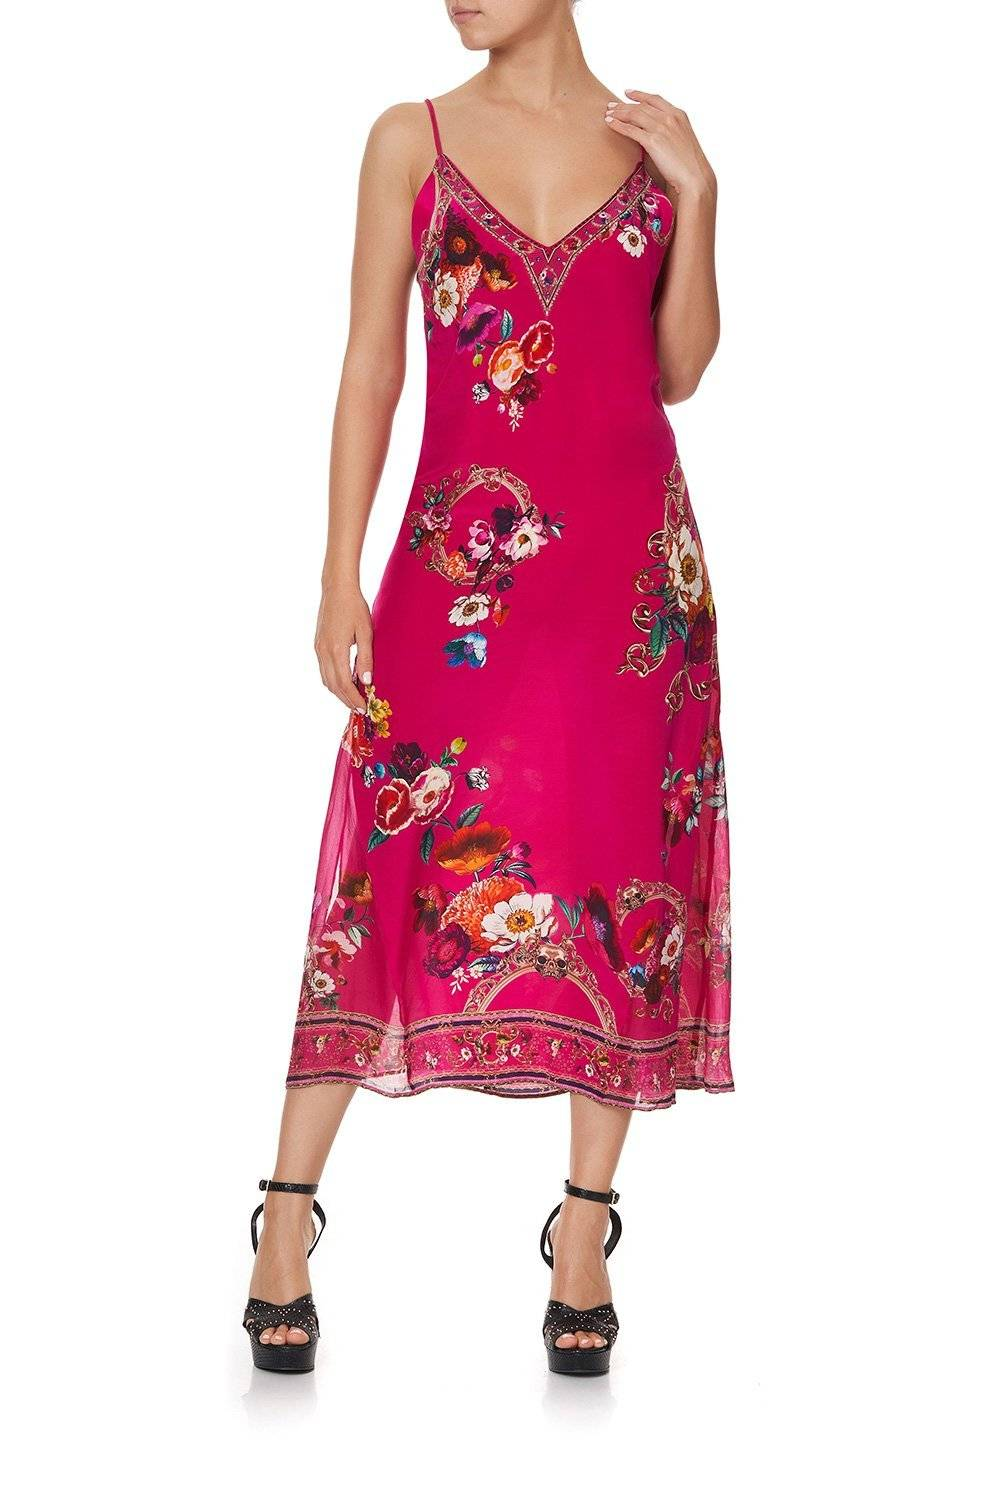 CAMILLA pink and floral slip dress